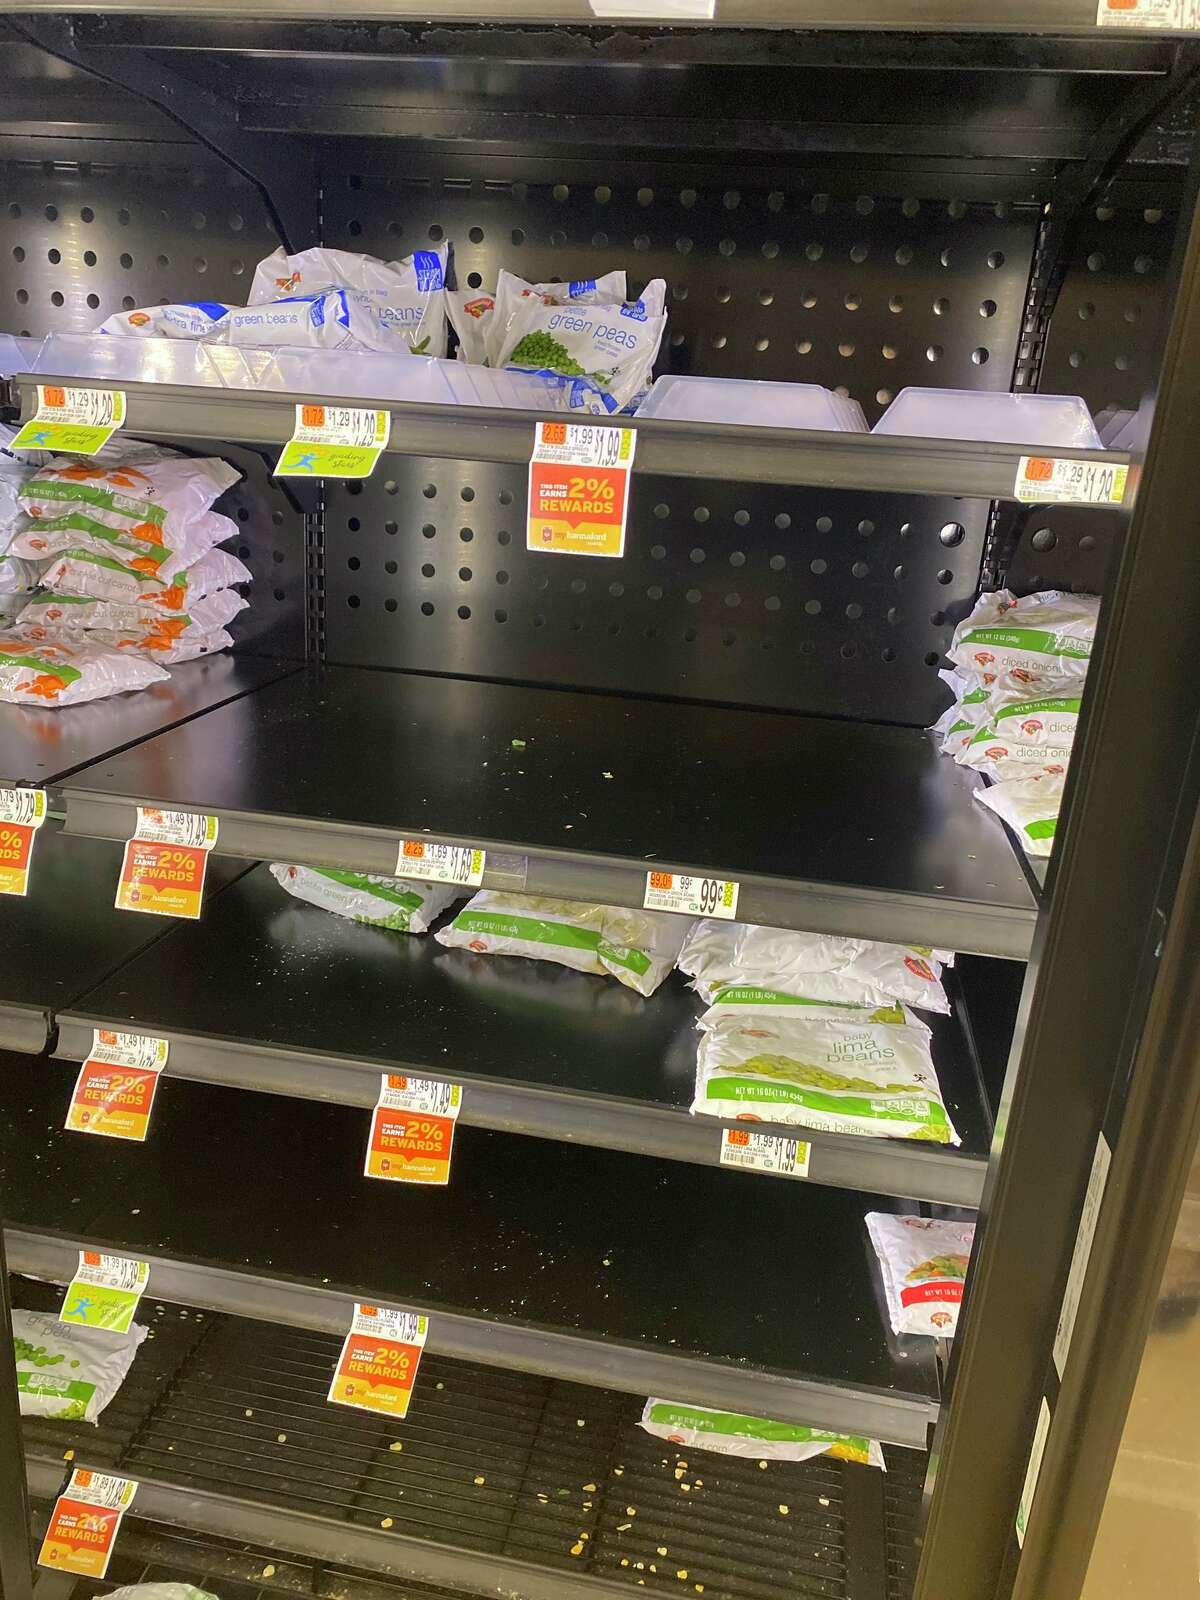 Frozen foods running low at Hannaford Supermarket in Delmar, N.Y.